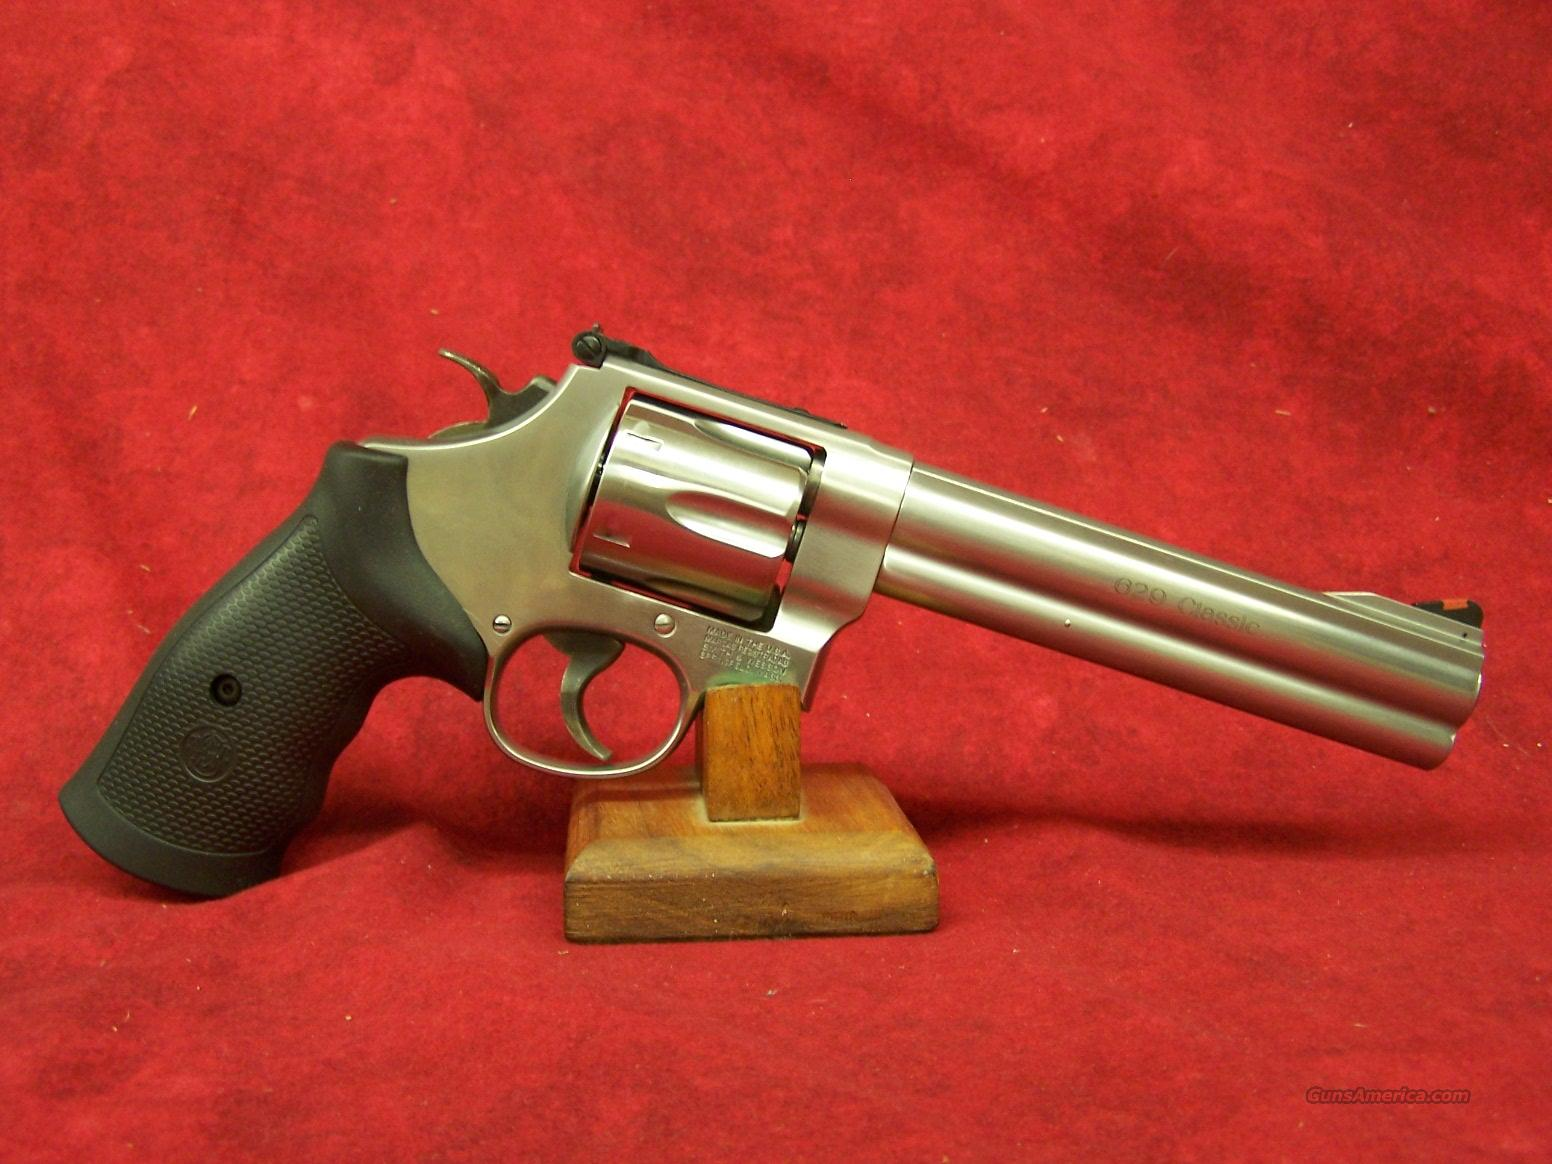 "Smith & Wesson 629 .44 Mag 6 1/2"" SS (163638)  Guns > Pistols > Smith & Wesson Revolvers > Model 629"